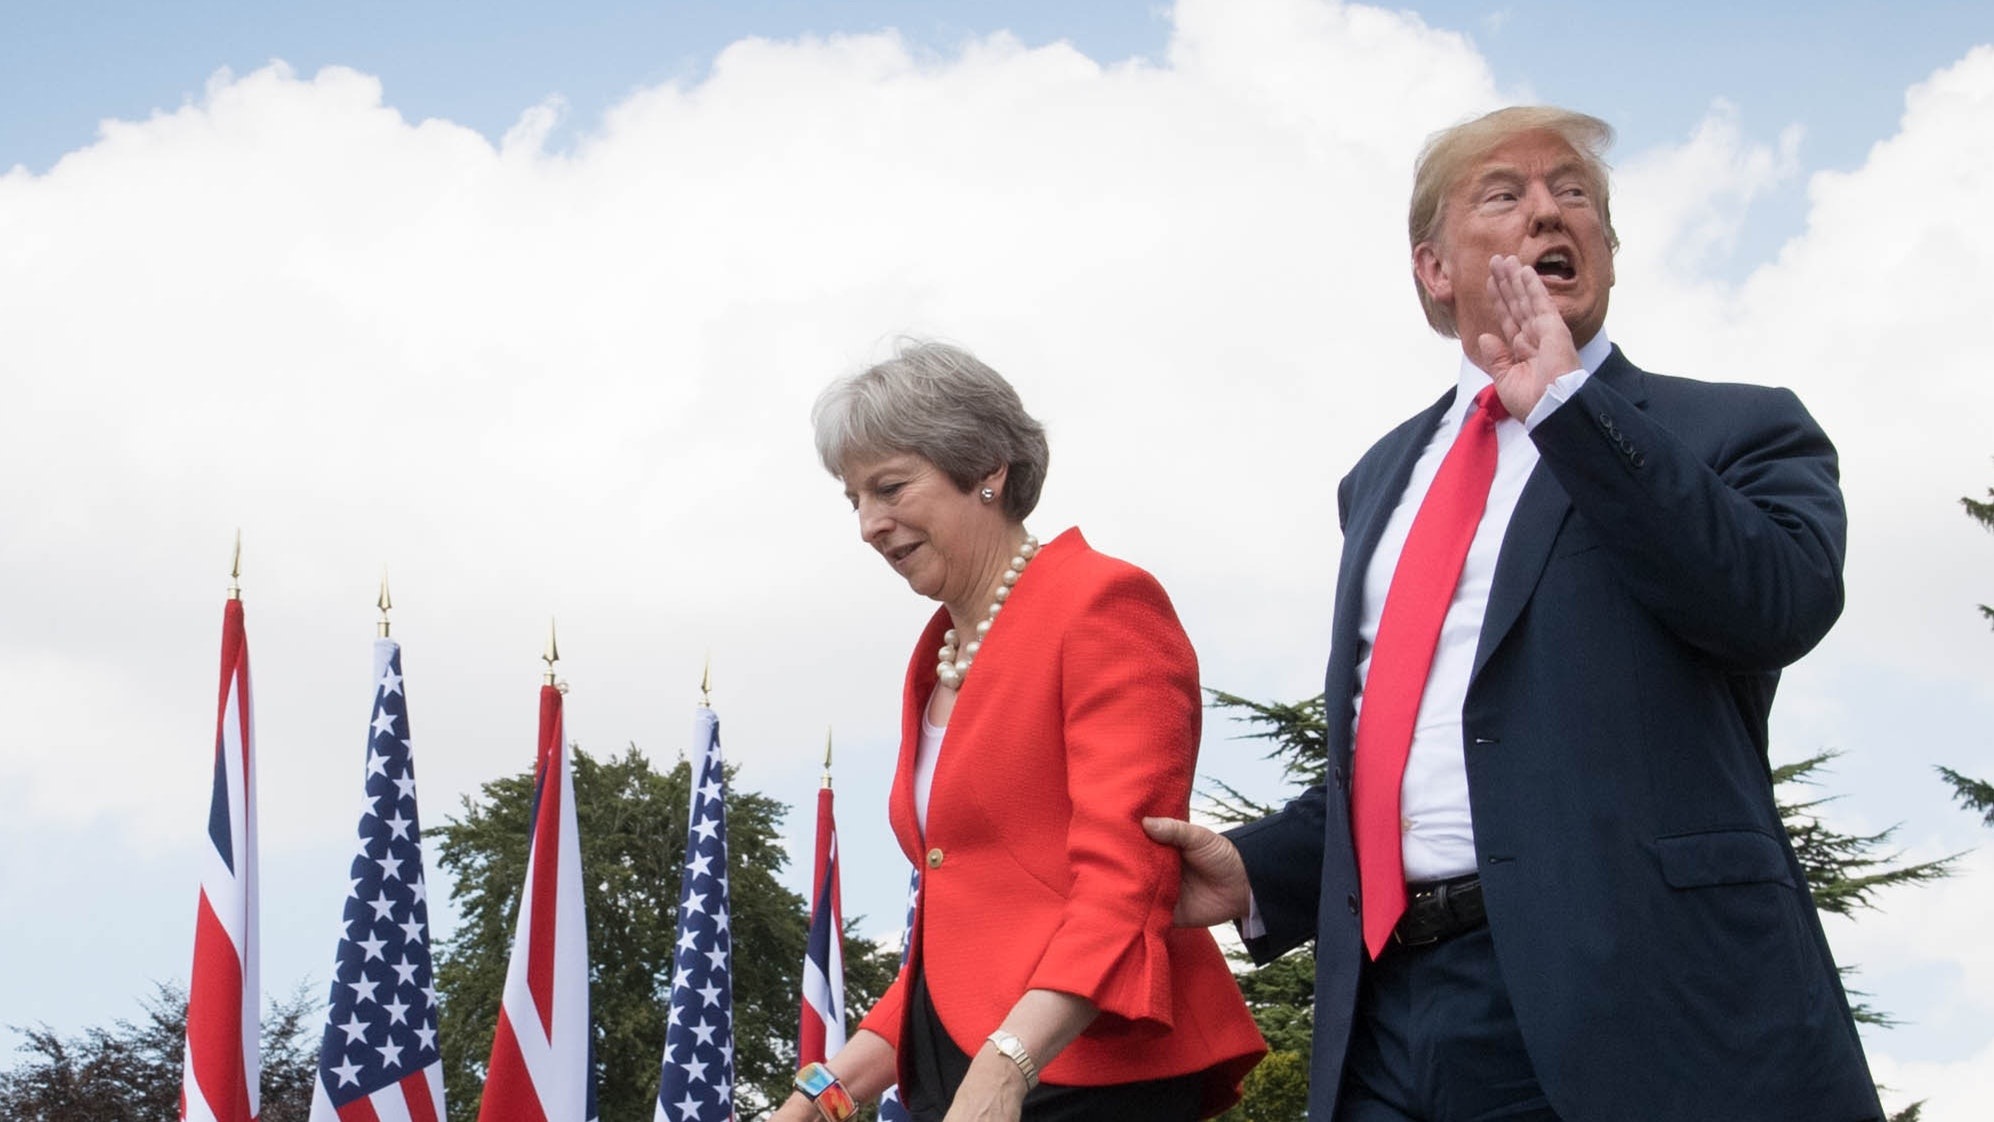 Trump UK visit 'increasingly important' as Brexit looms, MacCallum says